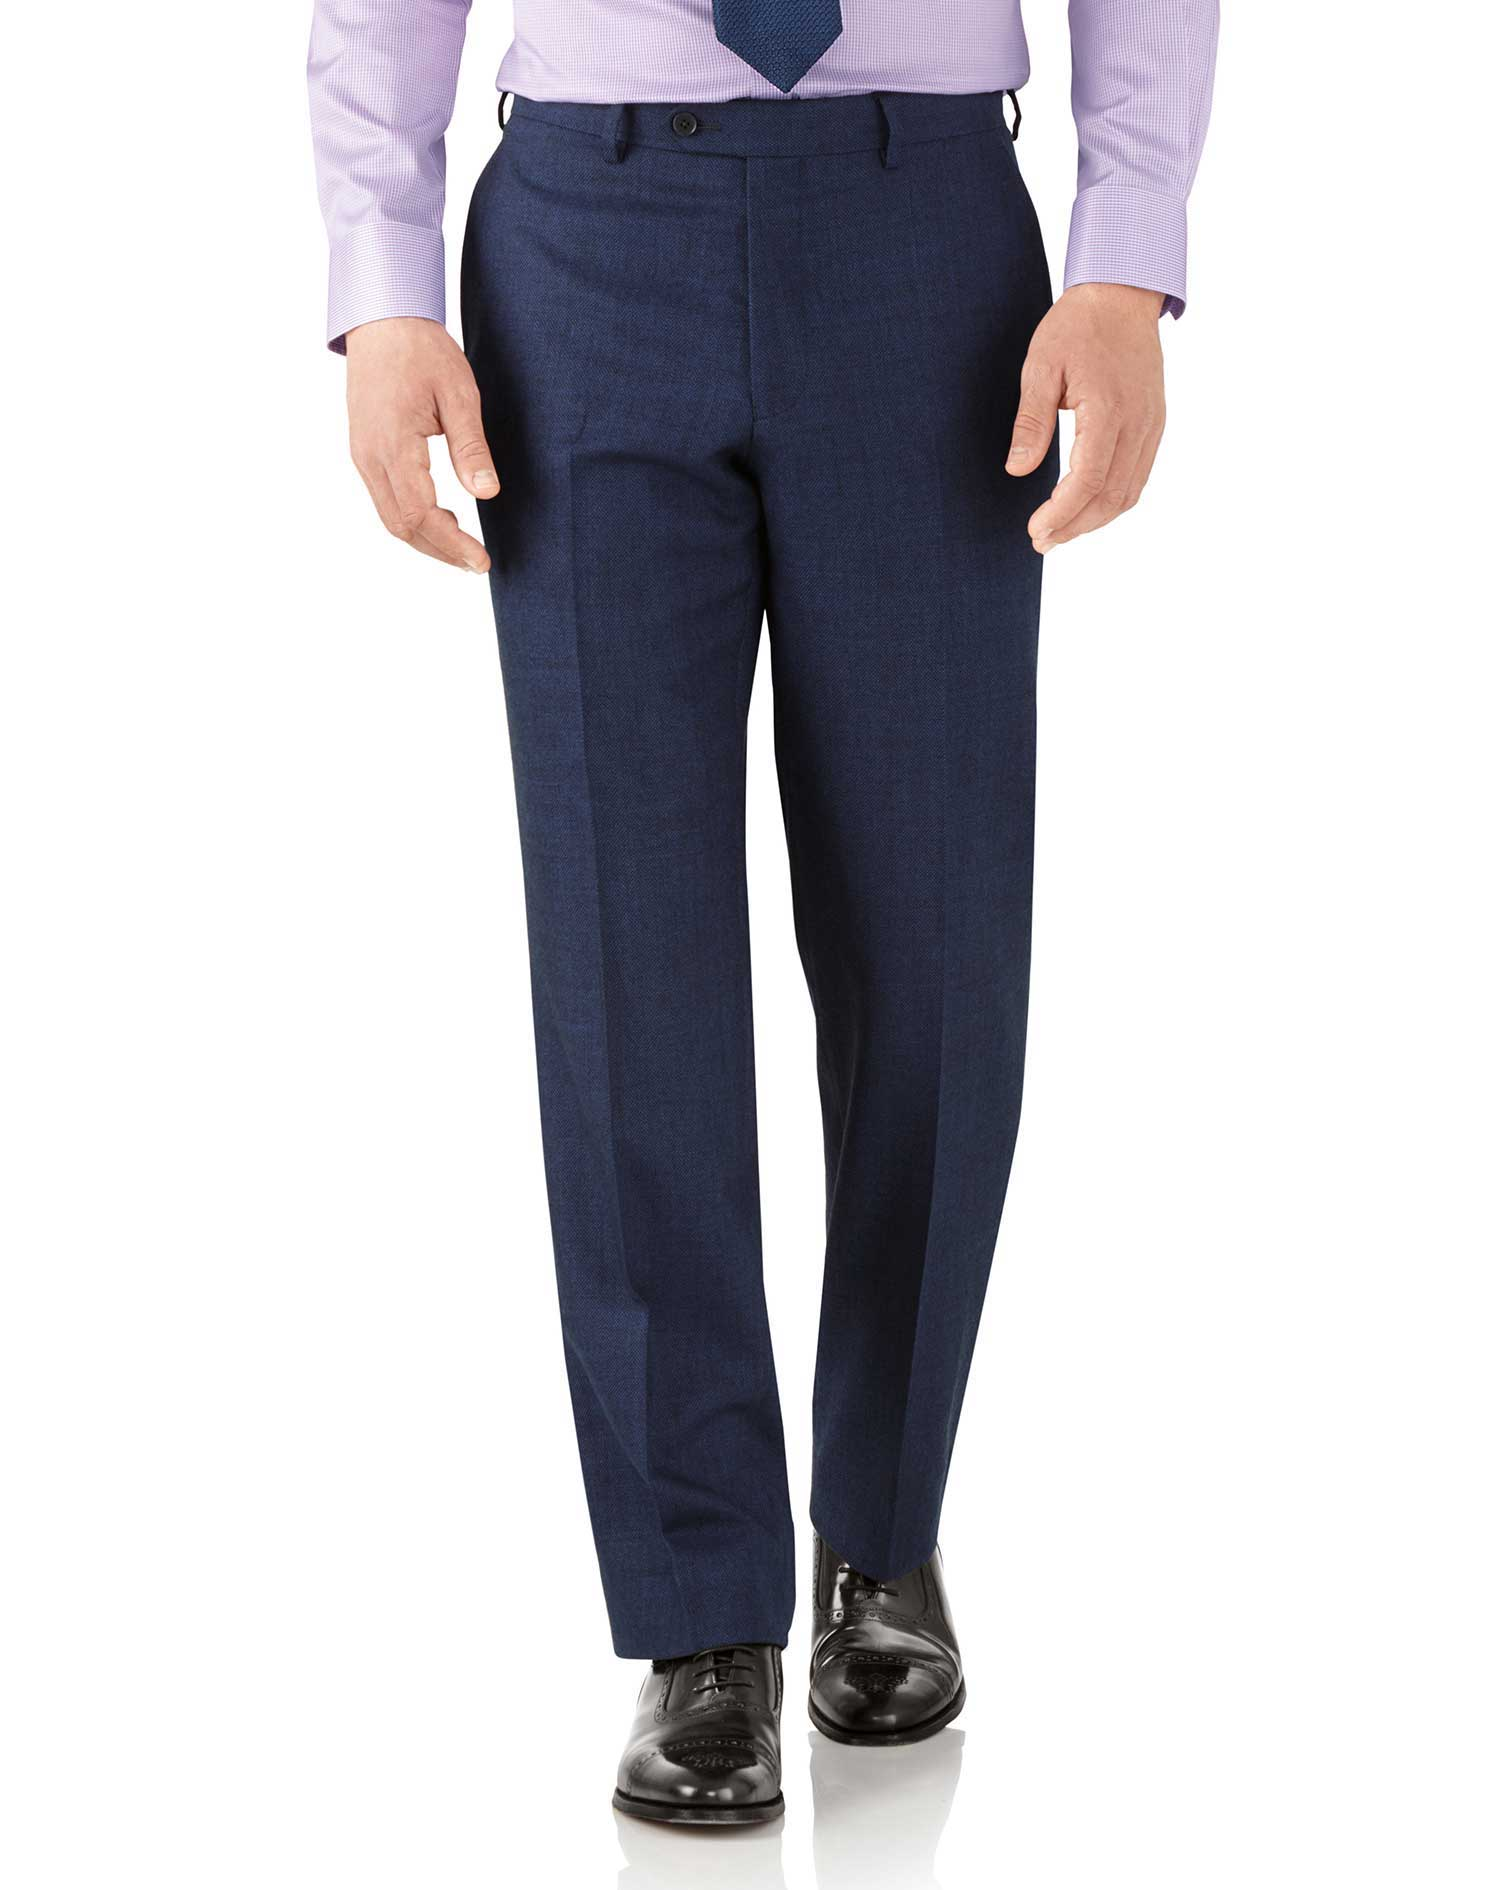 Royal Blue Classic Fit Flannel Business Suit Trousers Size W38 L34 by Charles Tyrwhitt